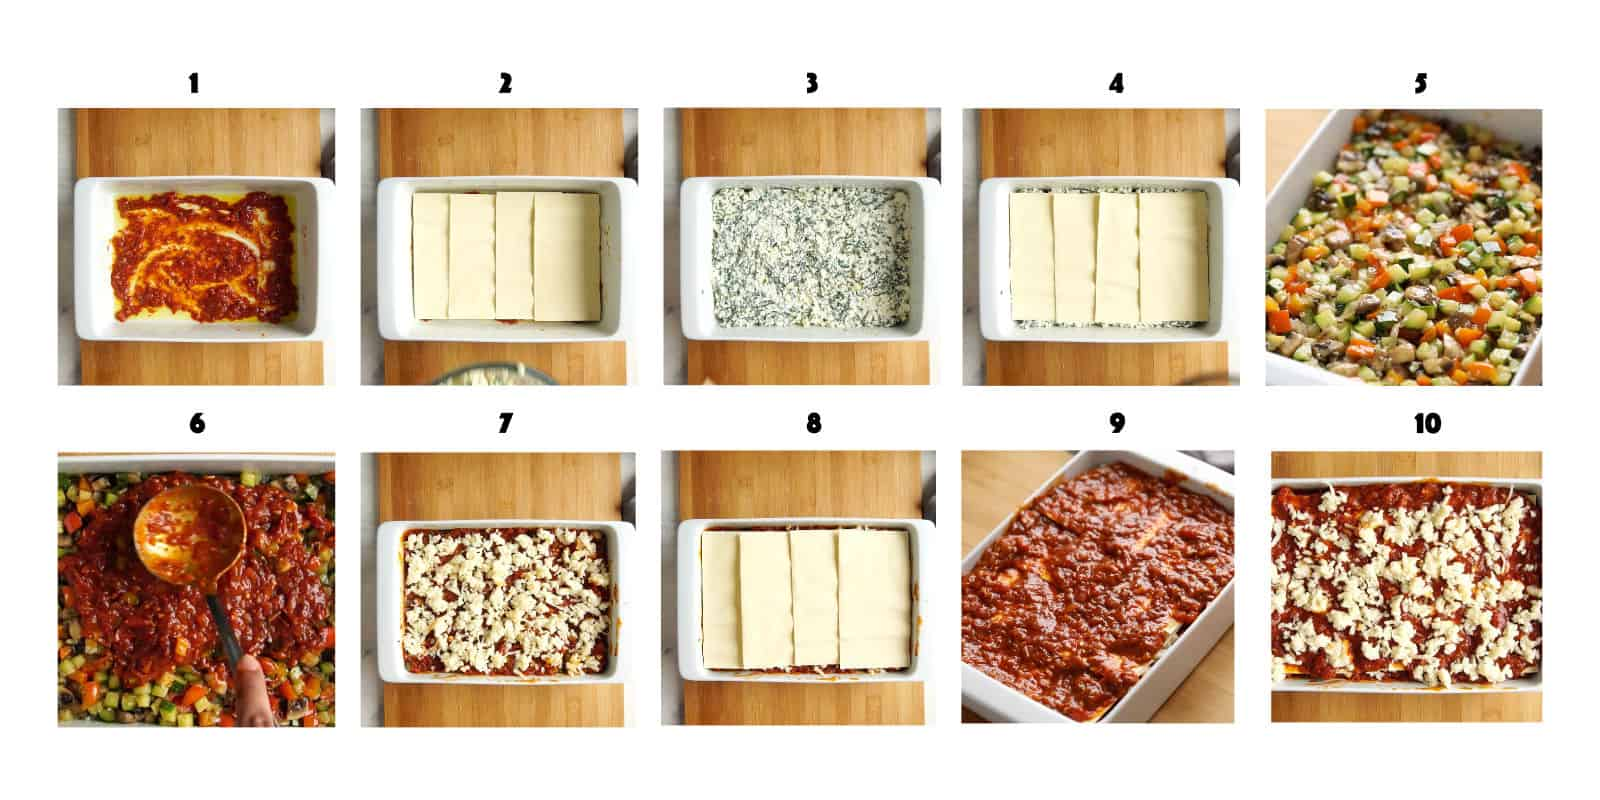 How to layer a lasagna